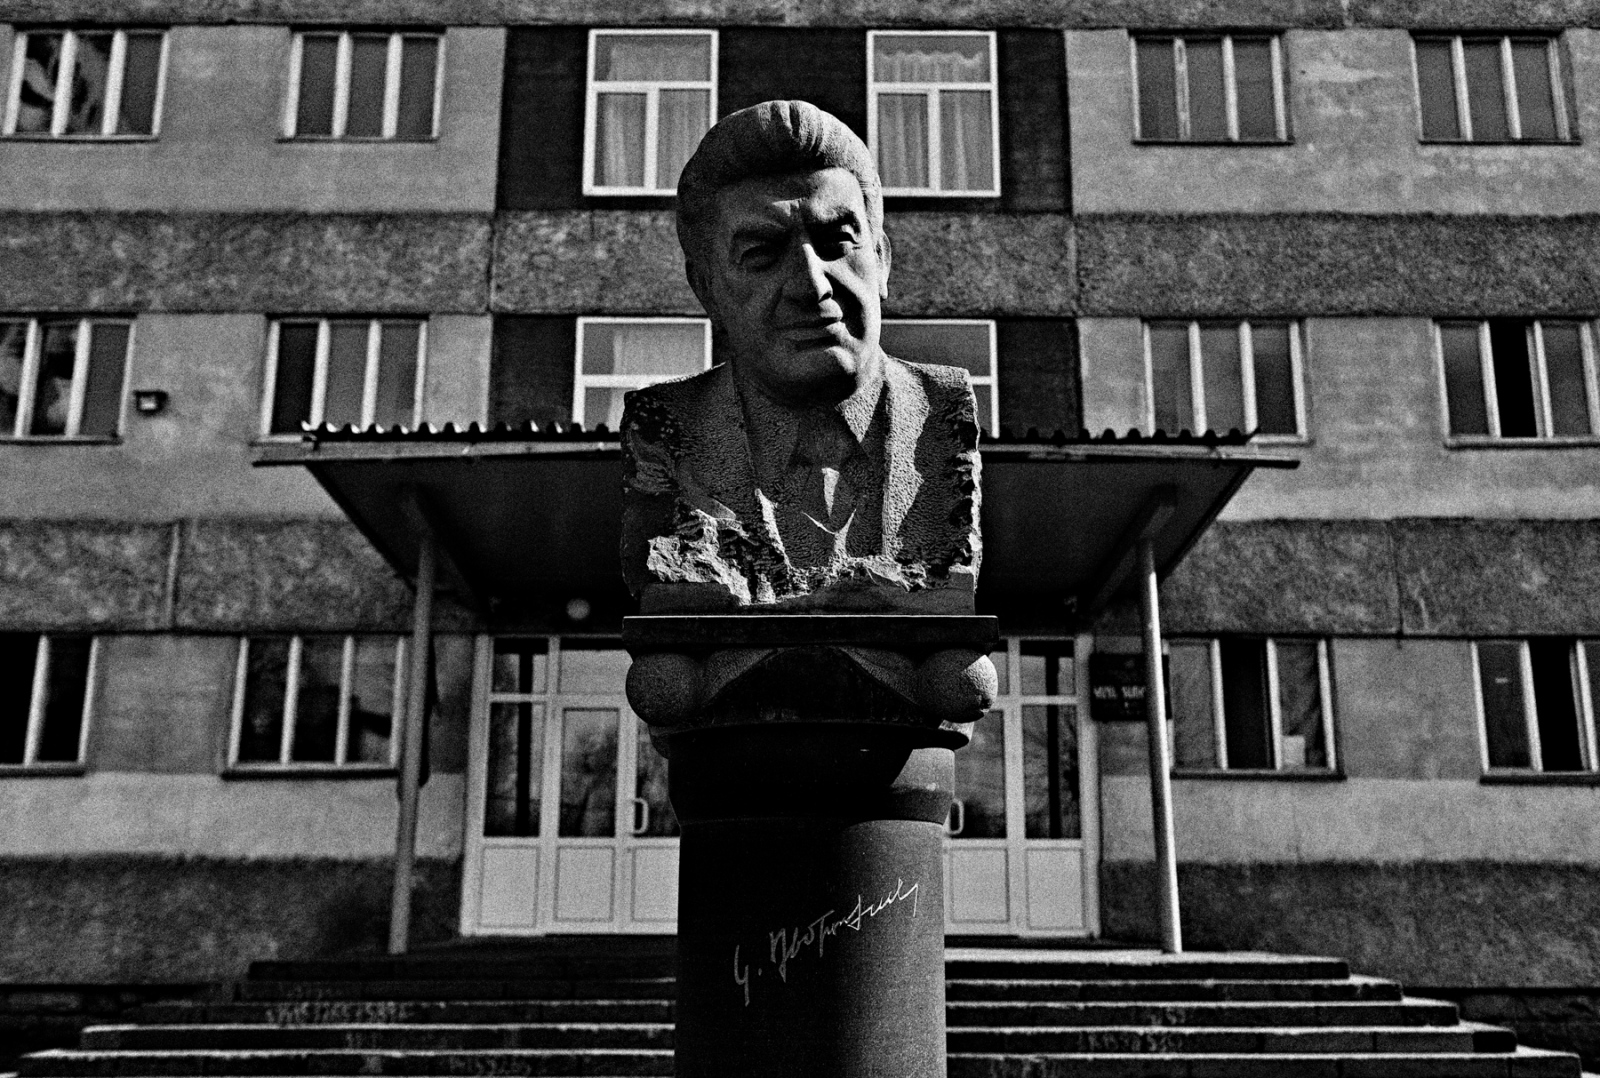 The Statute of Karen Demerchyan greets visitors to High School No. 139 named after Karen Demerchyan. Demerchyan was the first Secretary of the Armenian Soviet Socialist Republic from 1974 to 1988. After Armenia's independence in 1999 he became the first President of the National Assembly until his assassination on October 27, 1999.